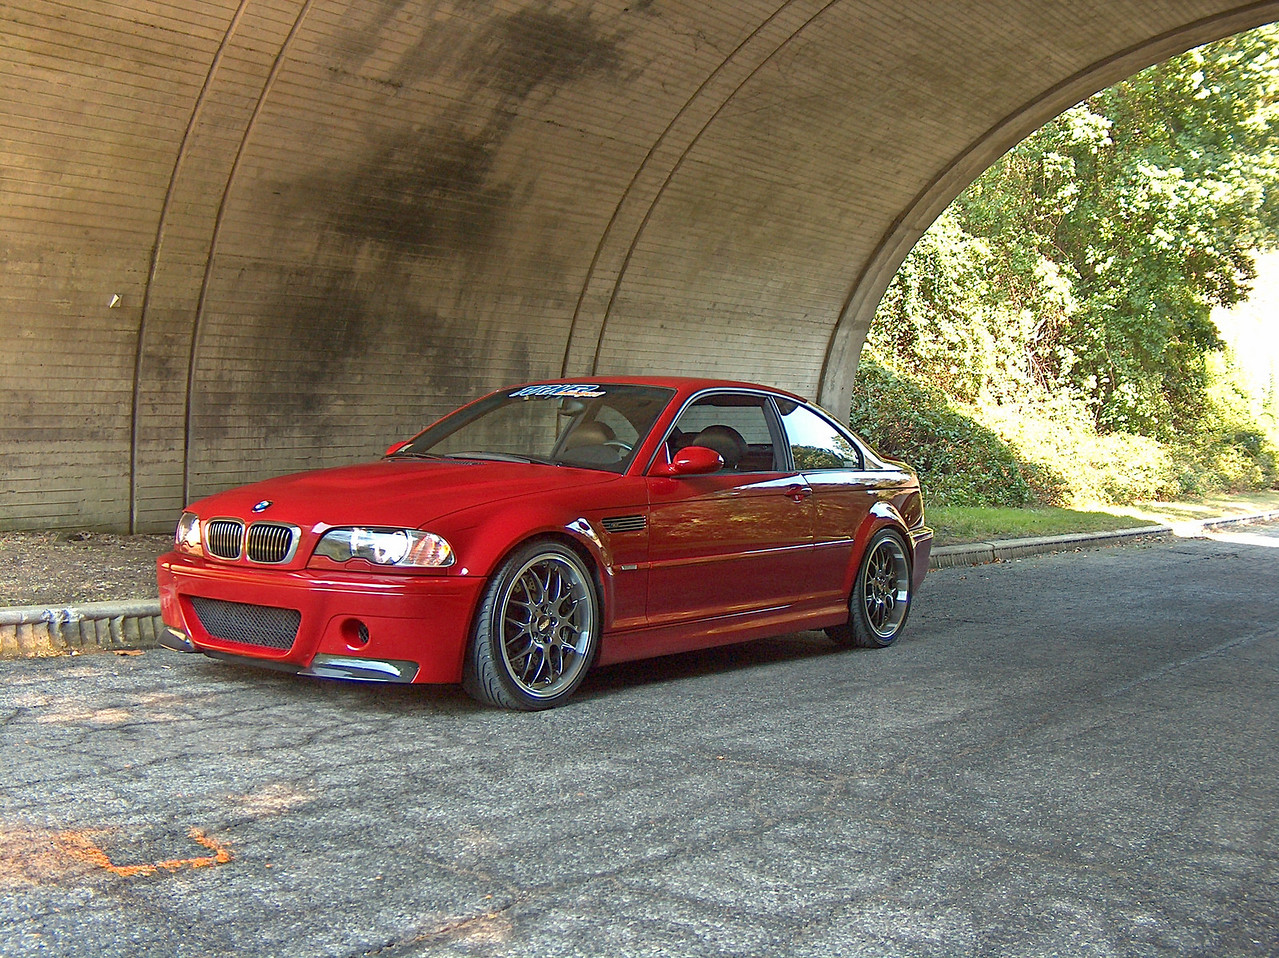 E46 M3, TMS-built car with many factory CSL parts